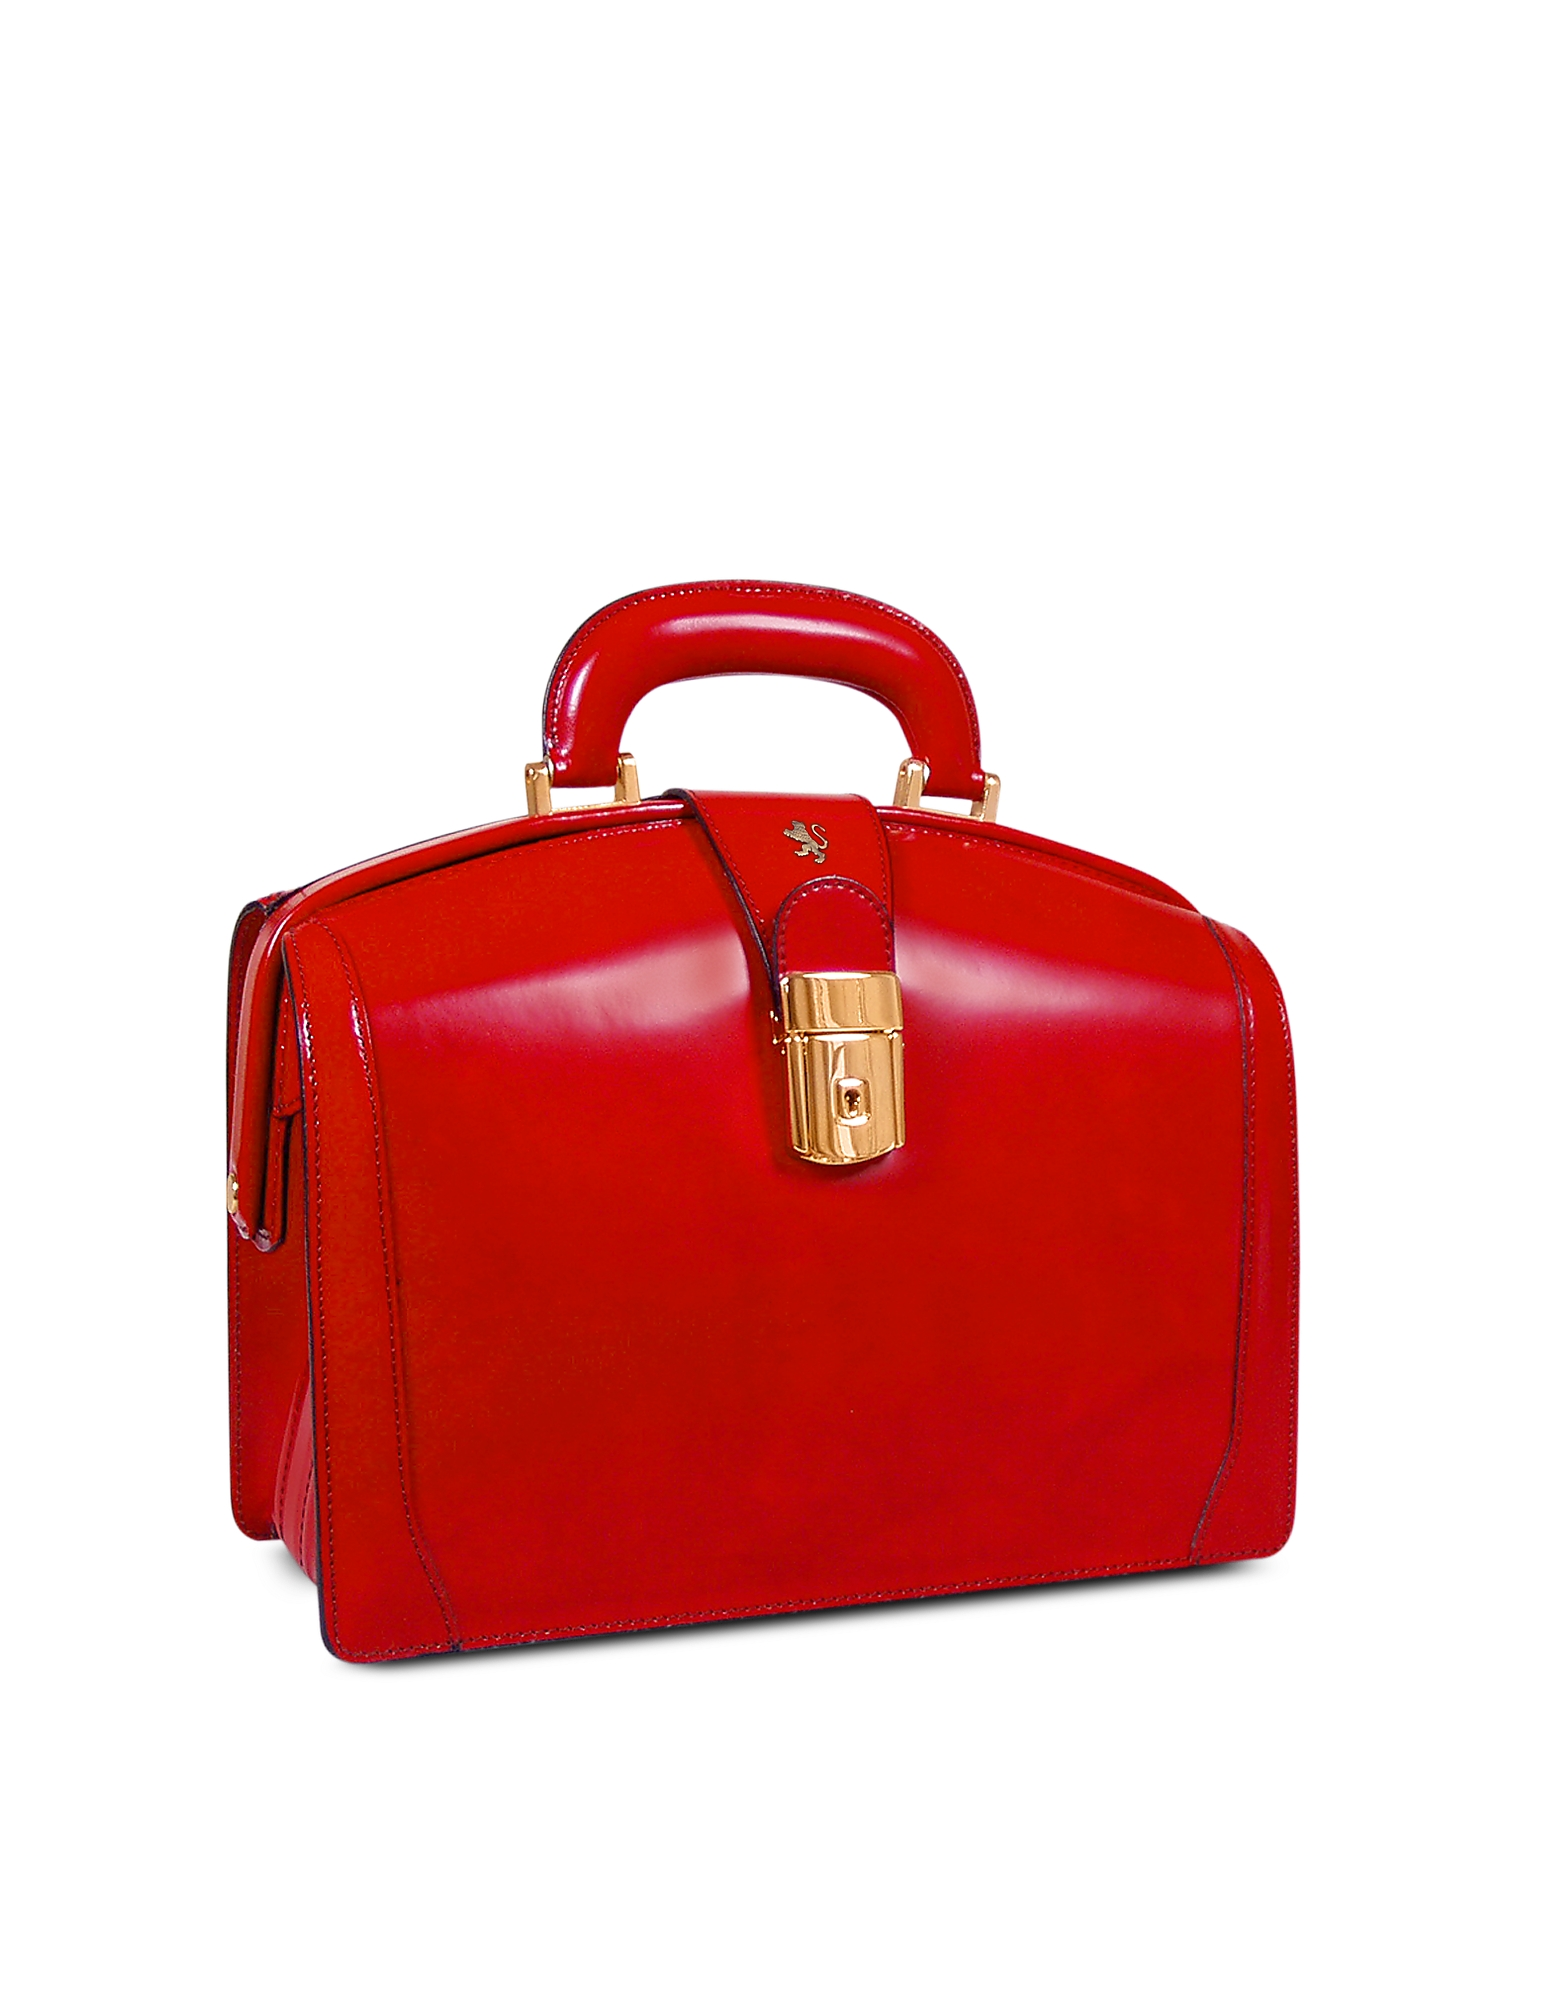 Pratesi Briefcases, Ladies Polished Italian Leather Briefcase